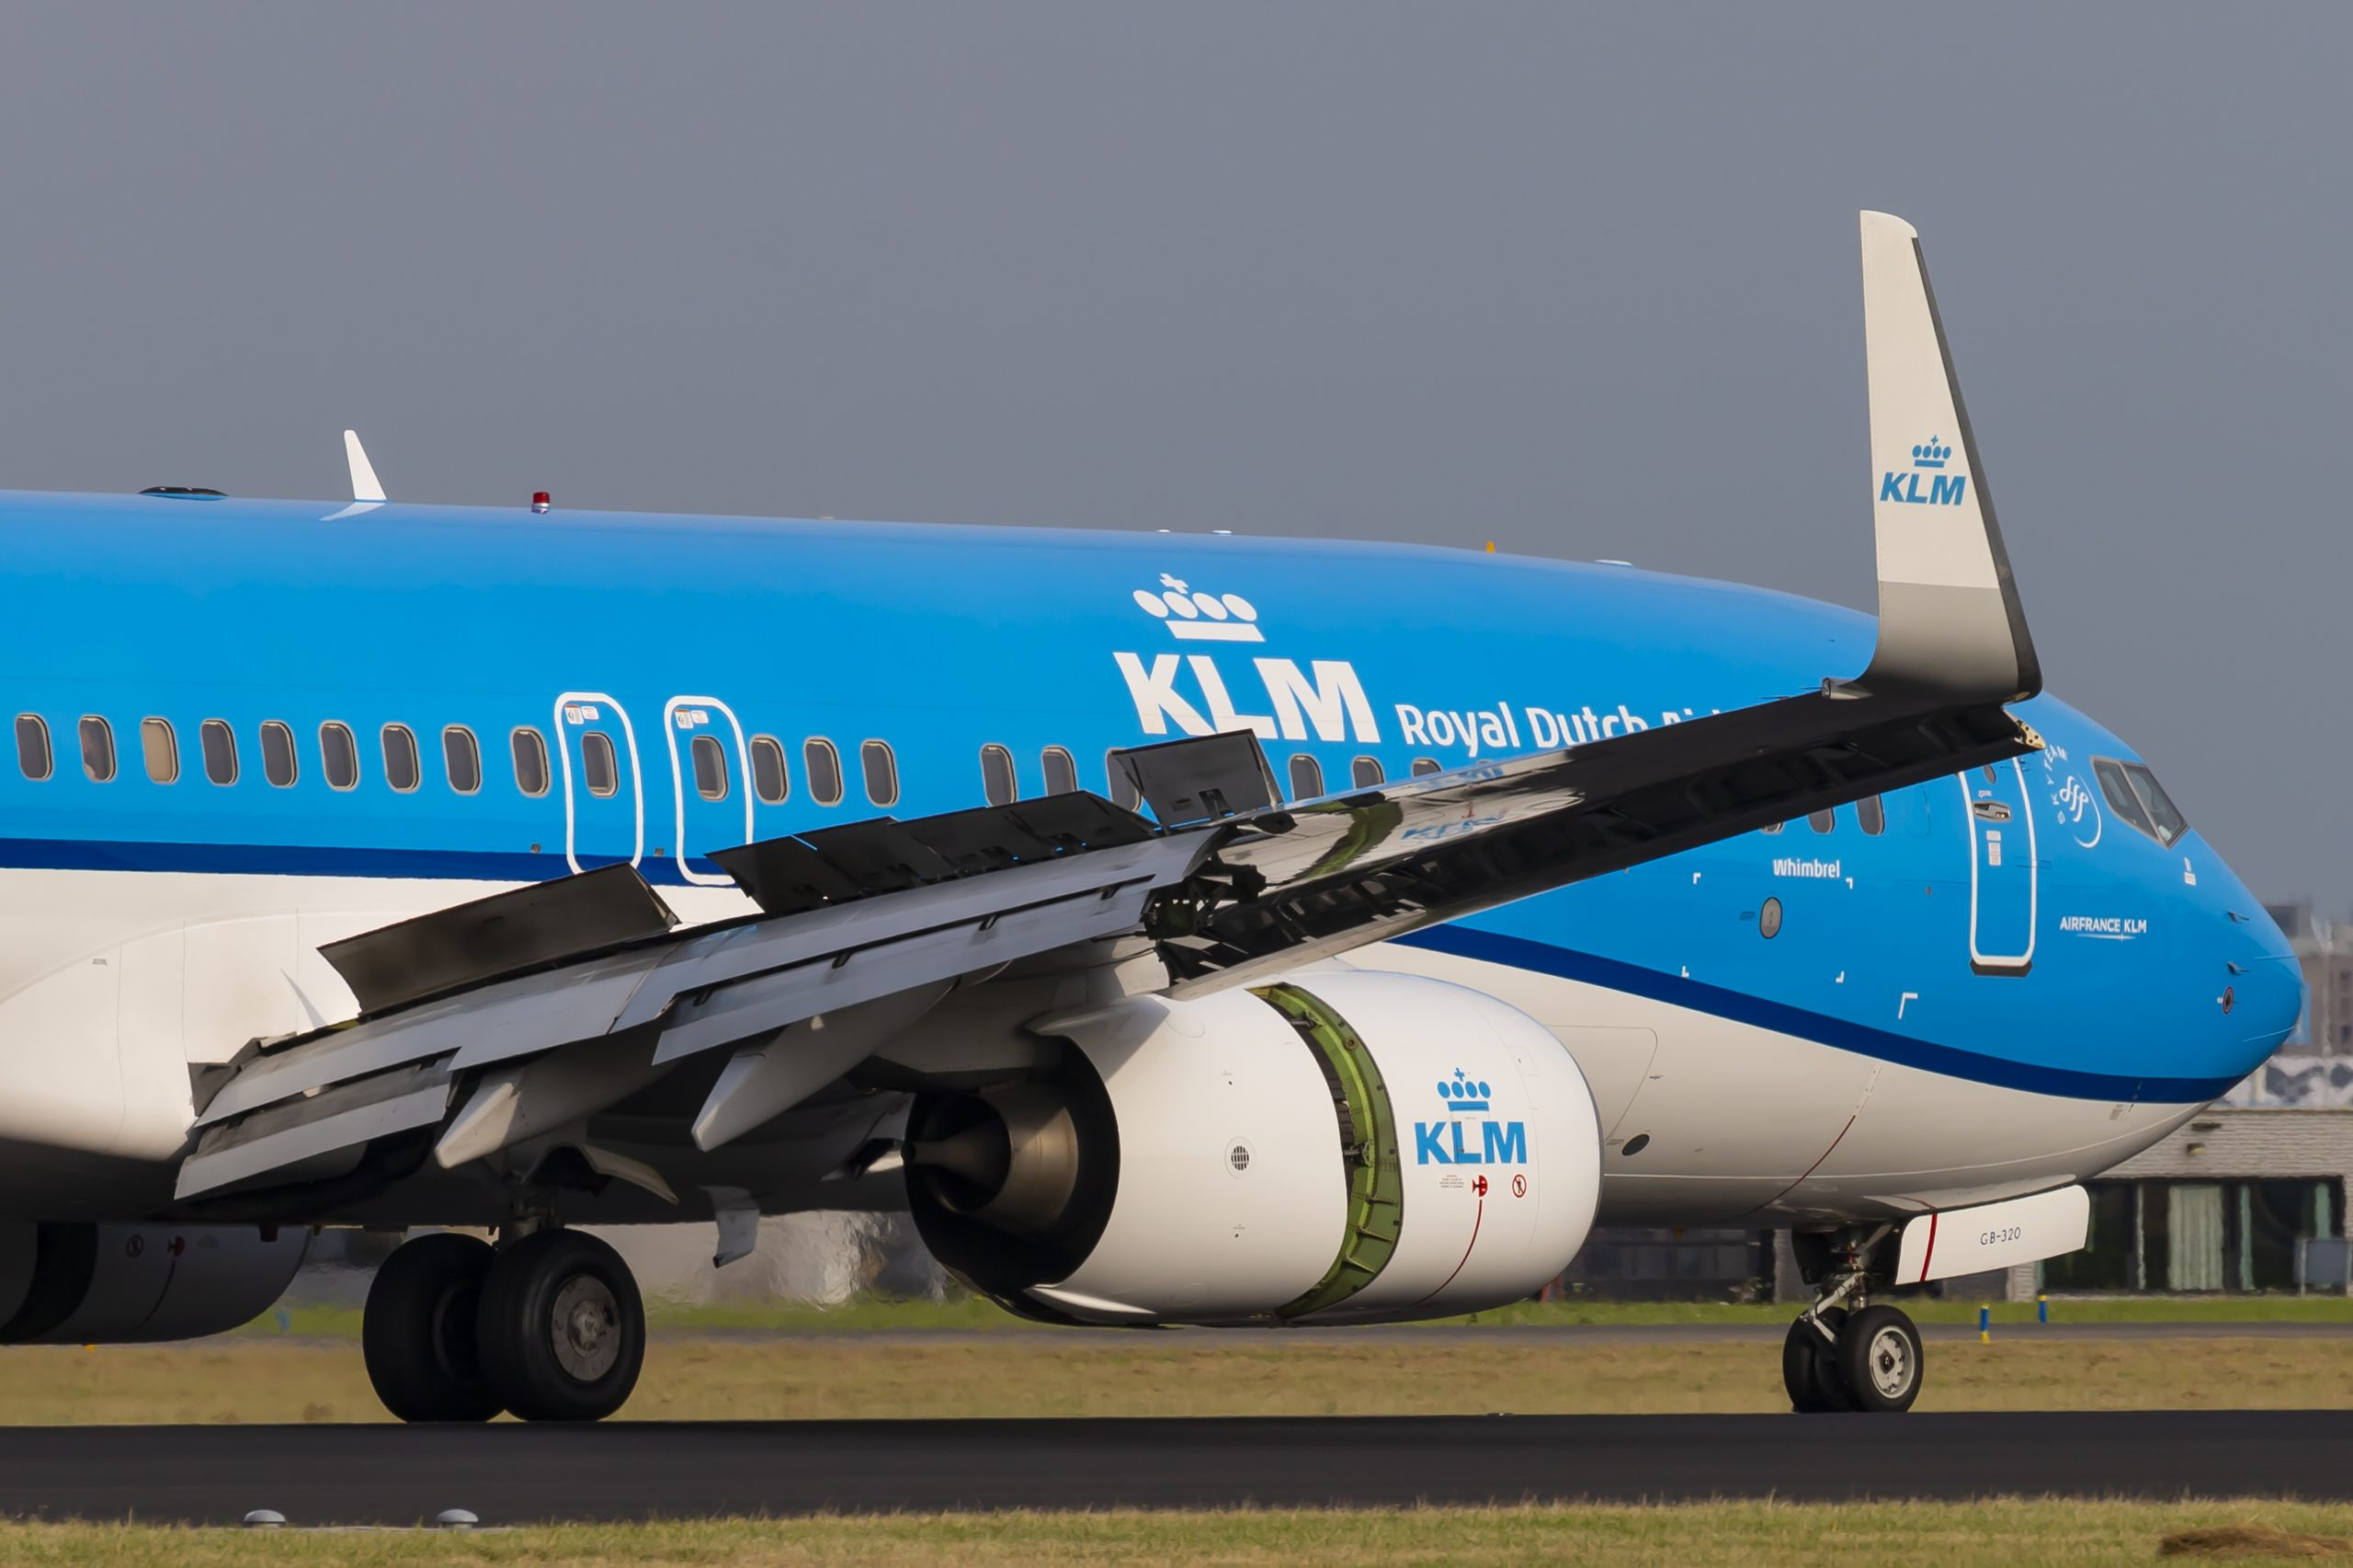 En Boeing 737-800 fra KLM. Foto: © Thorbjørn Brunander Sund, Danish Aviation Photo